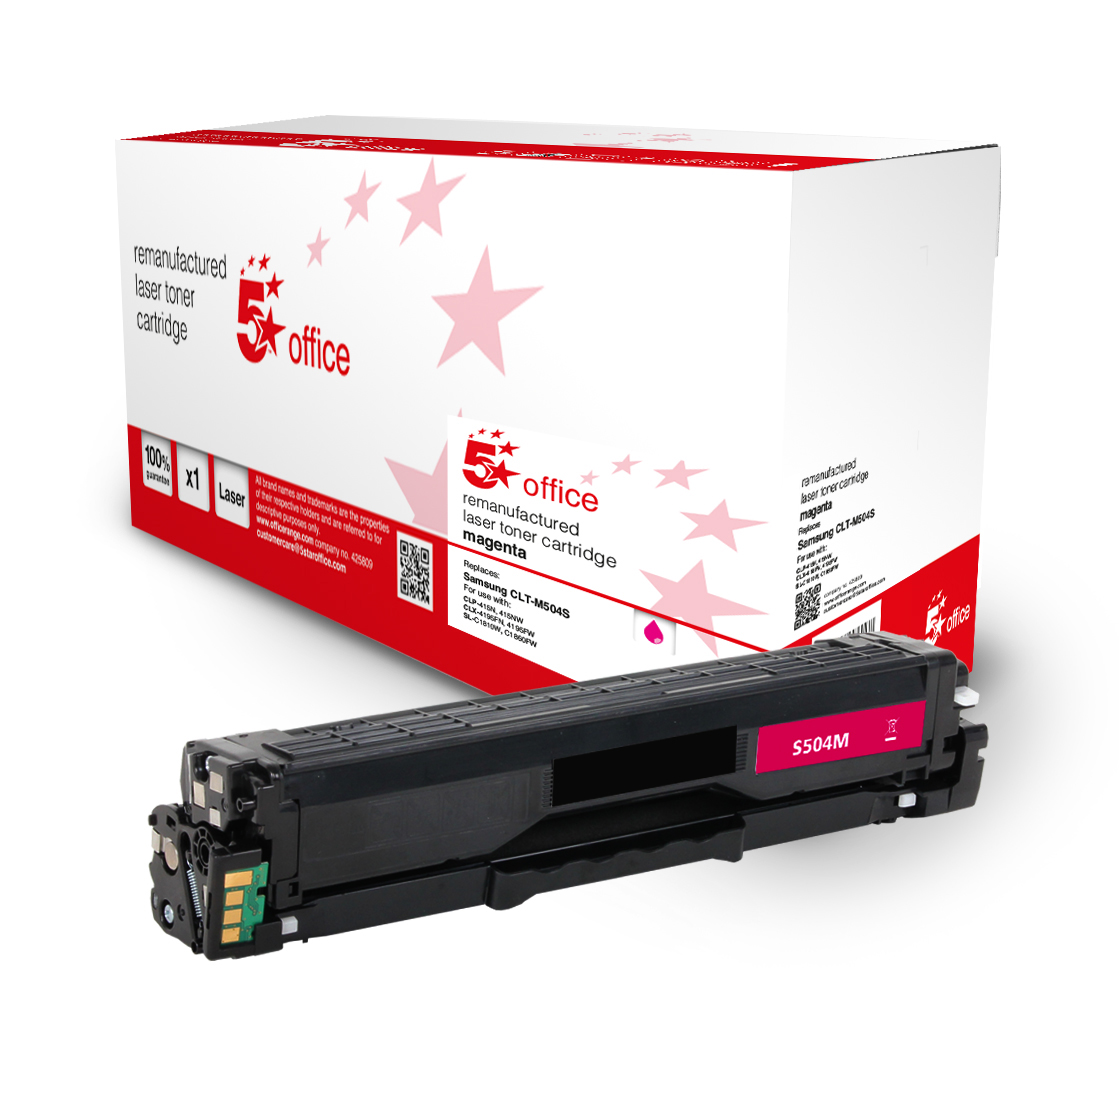 5 Star Office Remanufactured Toner Cartridge Page Life Magenta 1800pp Samsung SU292A Alternative